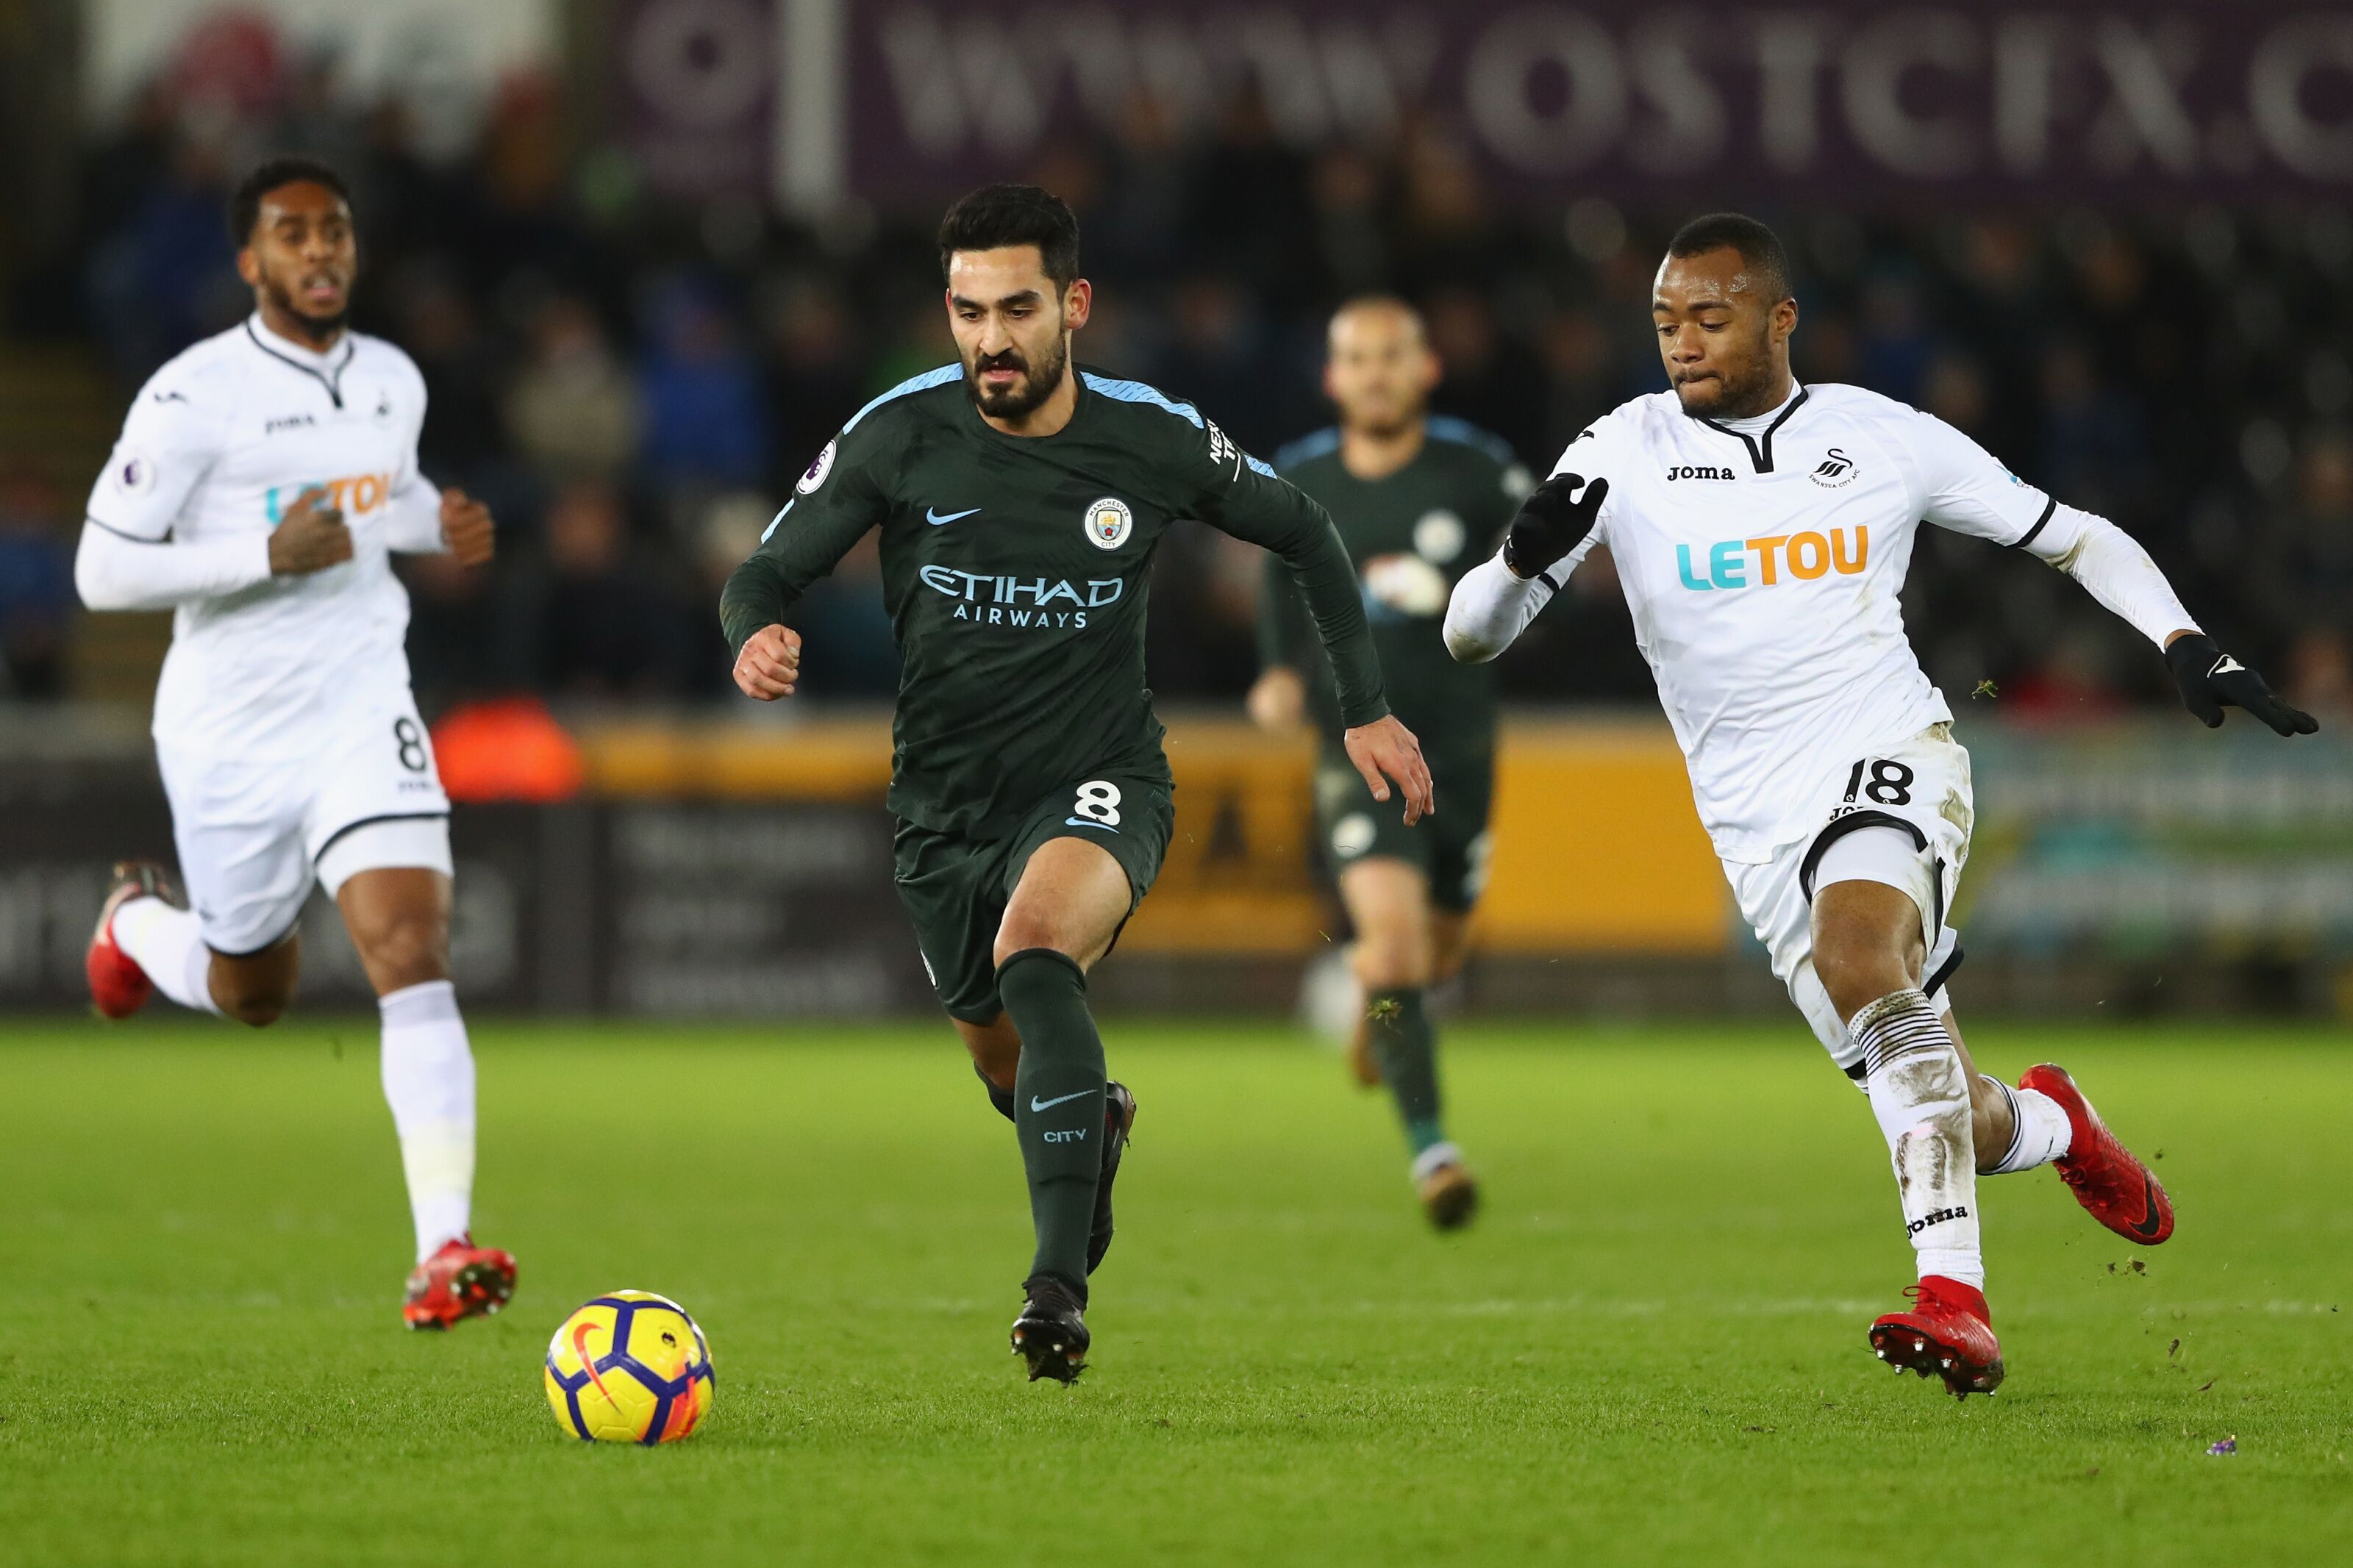 SWANSEA, WALES - DECEMBER 13: Ilkay Gundogan of Manchester City is tracked by Jordan Ayew of Swansea City during the Premier League match between Swansea City and Manchester City at Liberty Stadium on December 13, 2017 in Swansea, Wales. (Photo by Michael Steele/Getty Images)